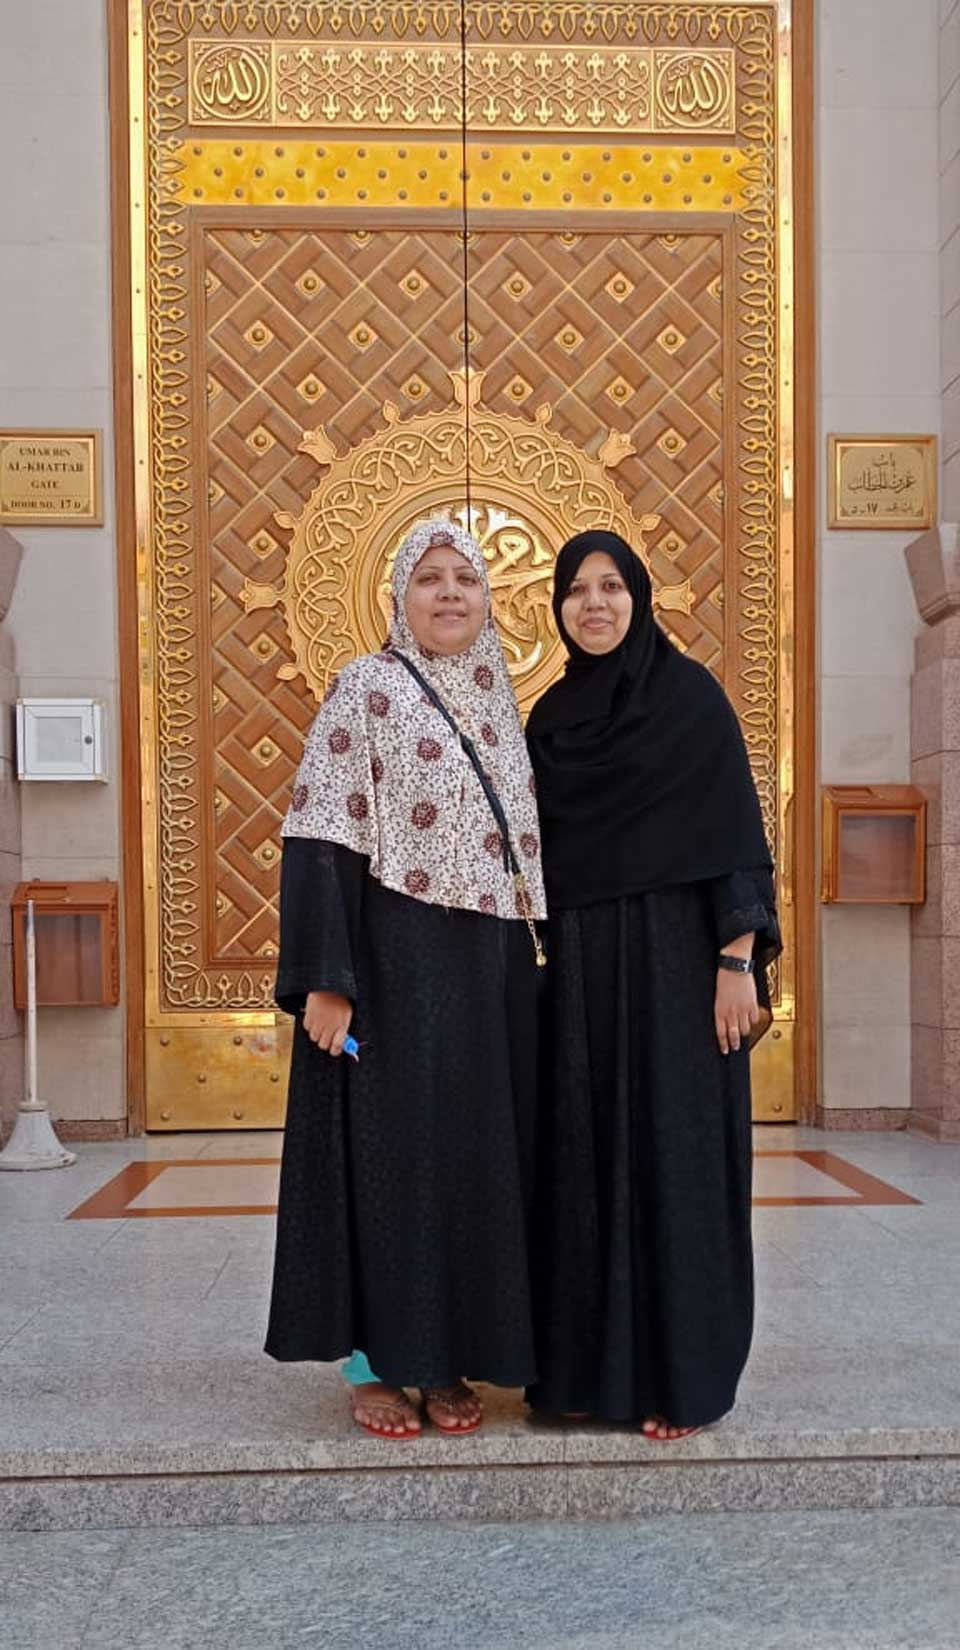 The two sisters Dr. Kiran and Erum Imran in front of the entry gate of Masjid-e-Nabwi